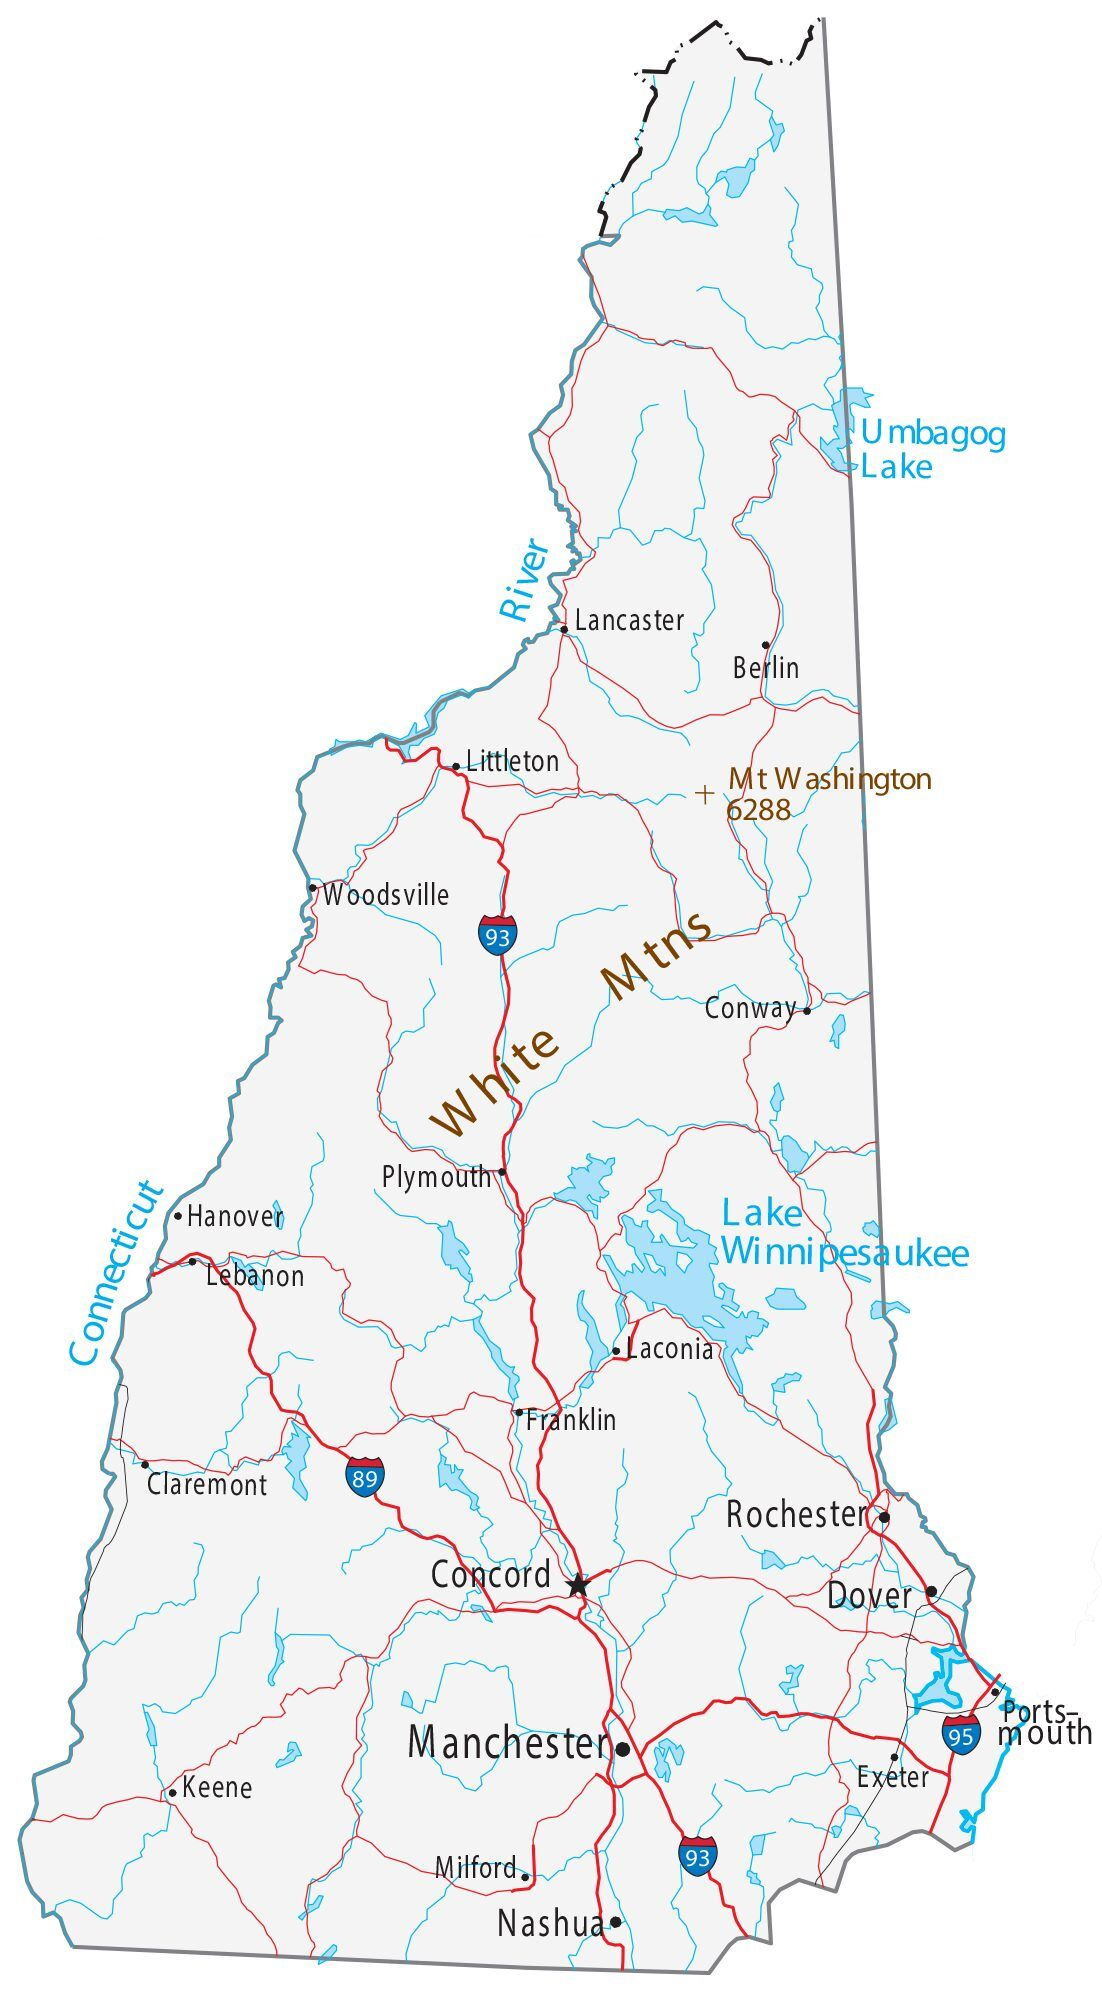 Map Of New Hampshire Cities And Roads Gis Geography,Best Places To Travel In December And January